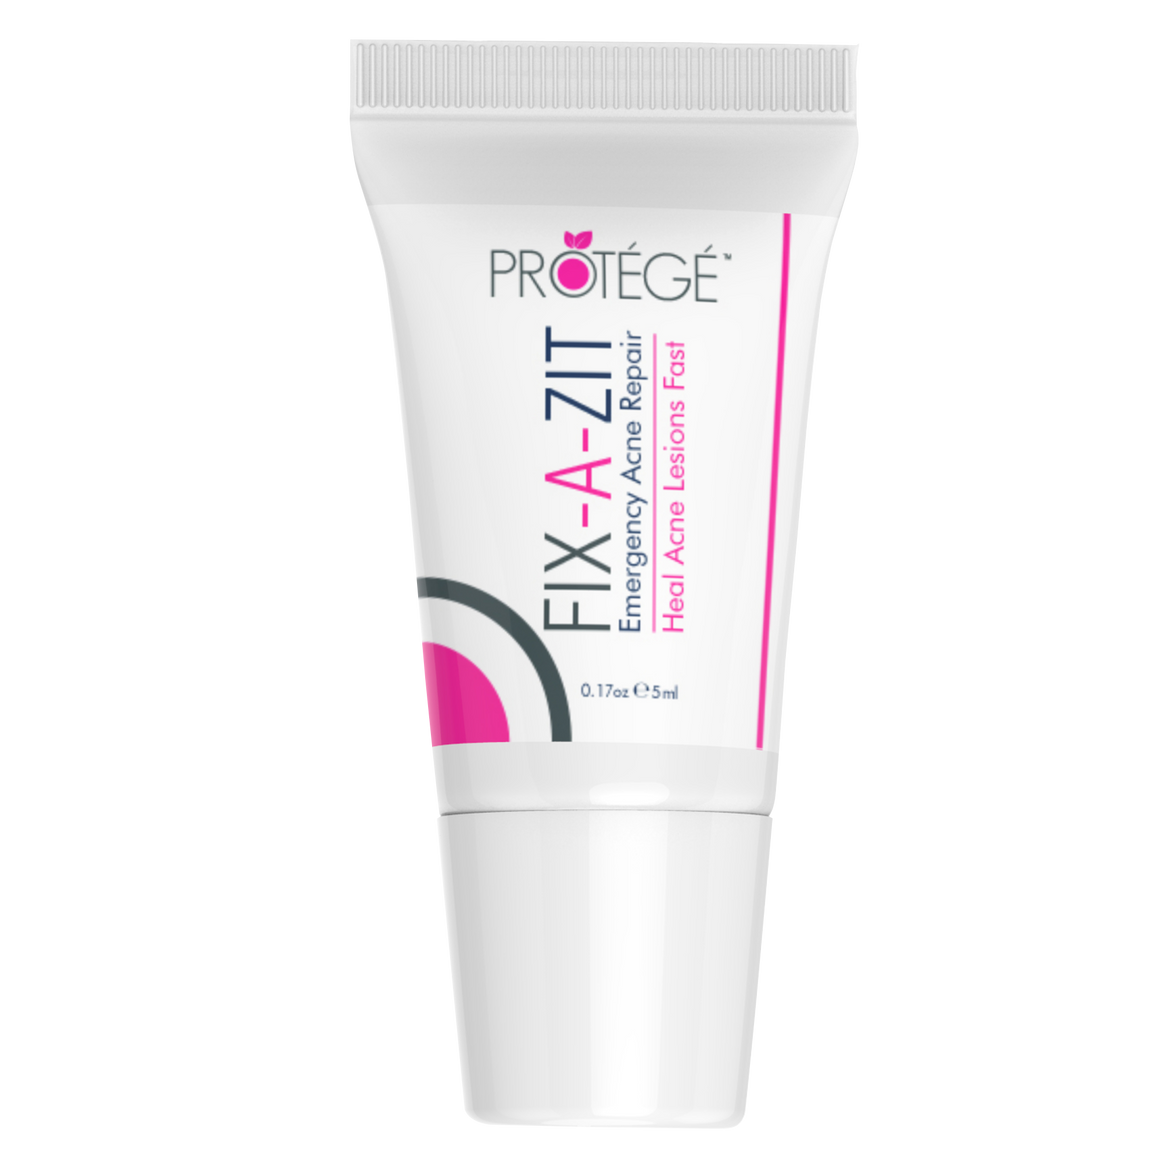 Fix-A-Zit - Acne Spot Treatment - Zits Diminished in 48 Hours